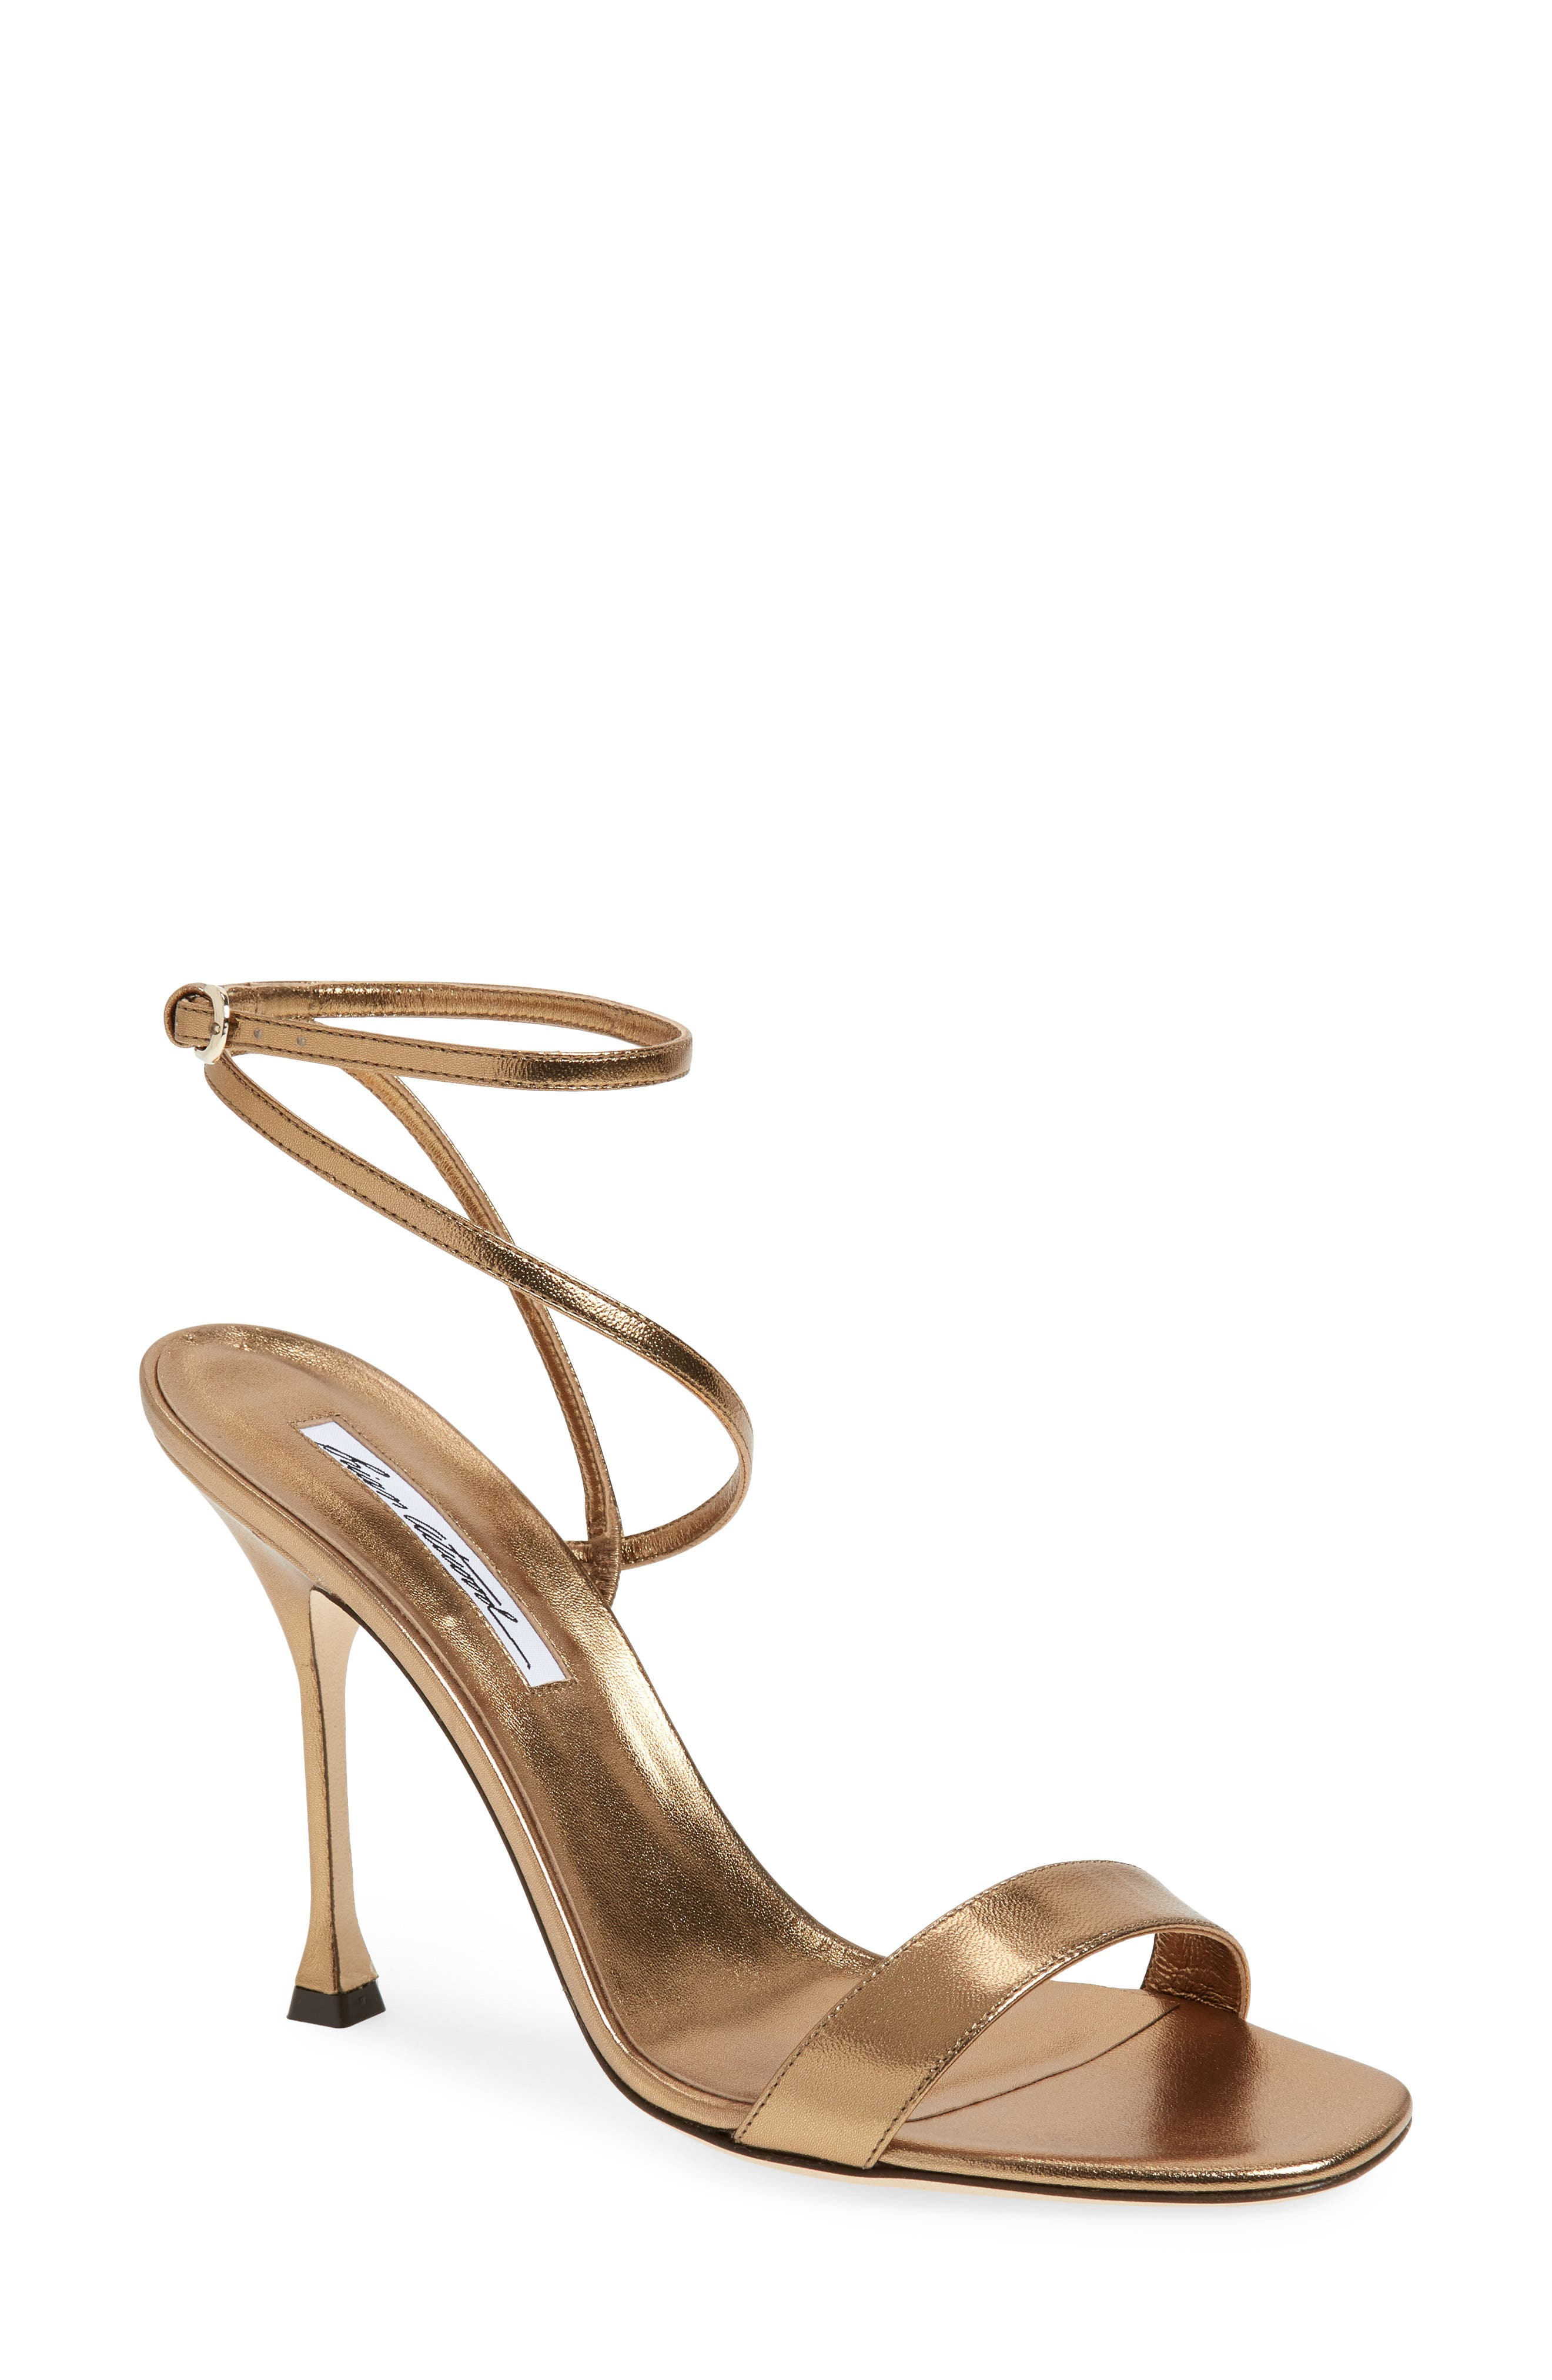 Image of B Brian Atwood Sienna Ankle Strap Sandal